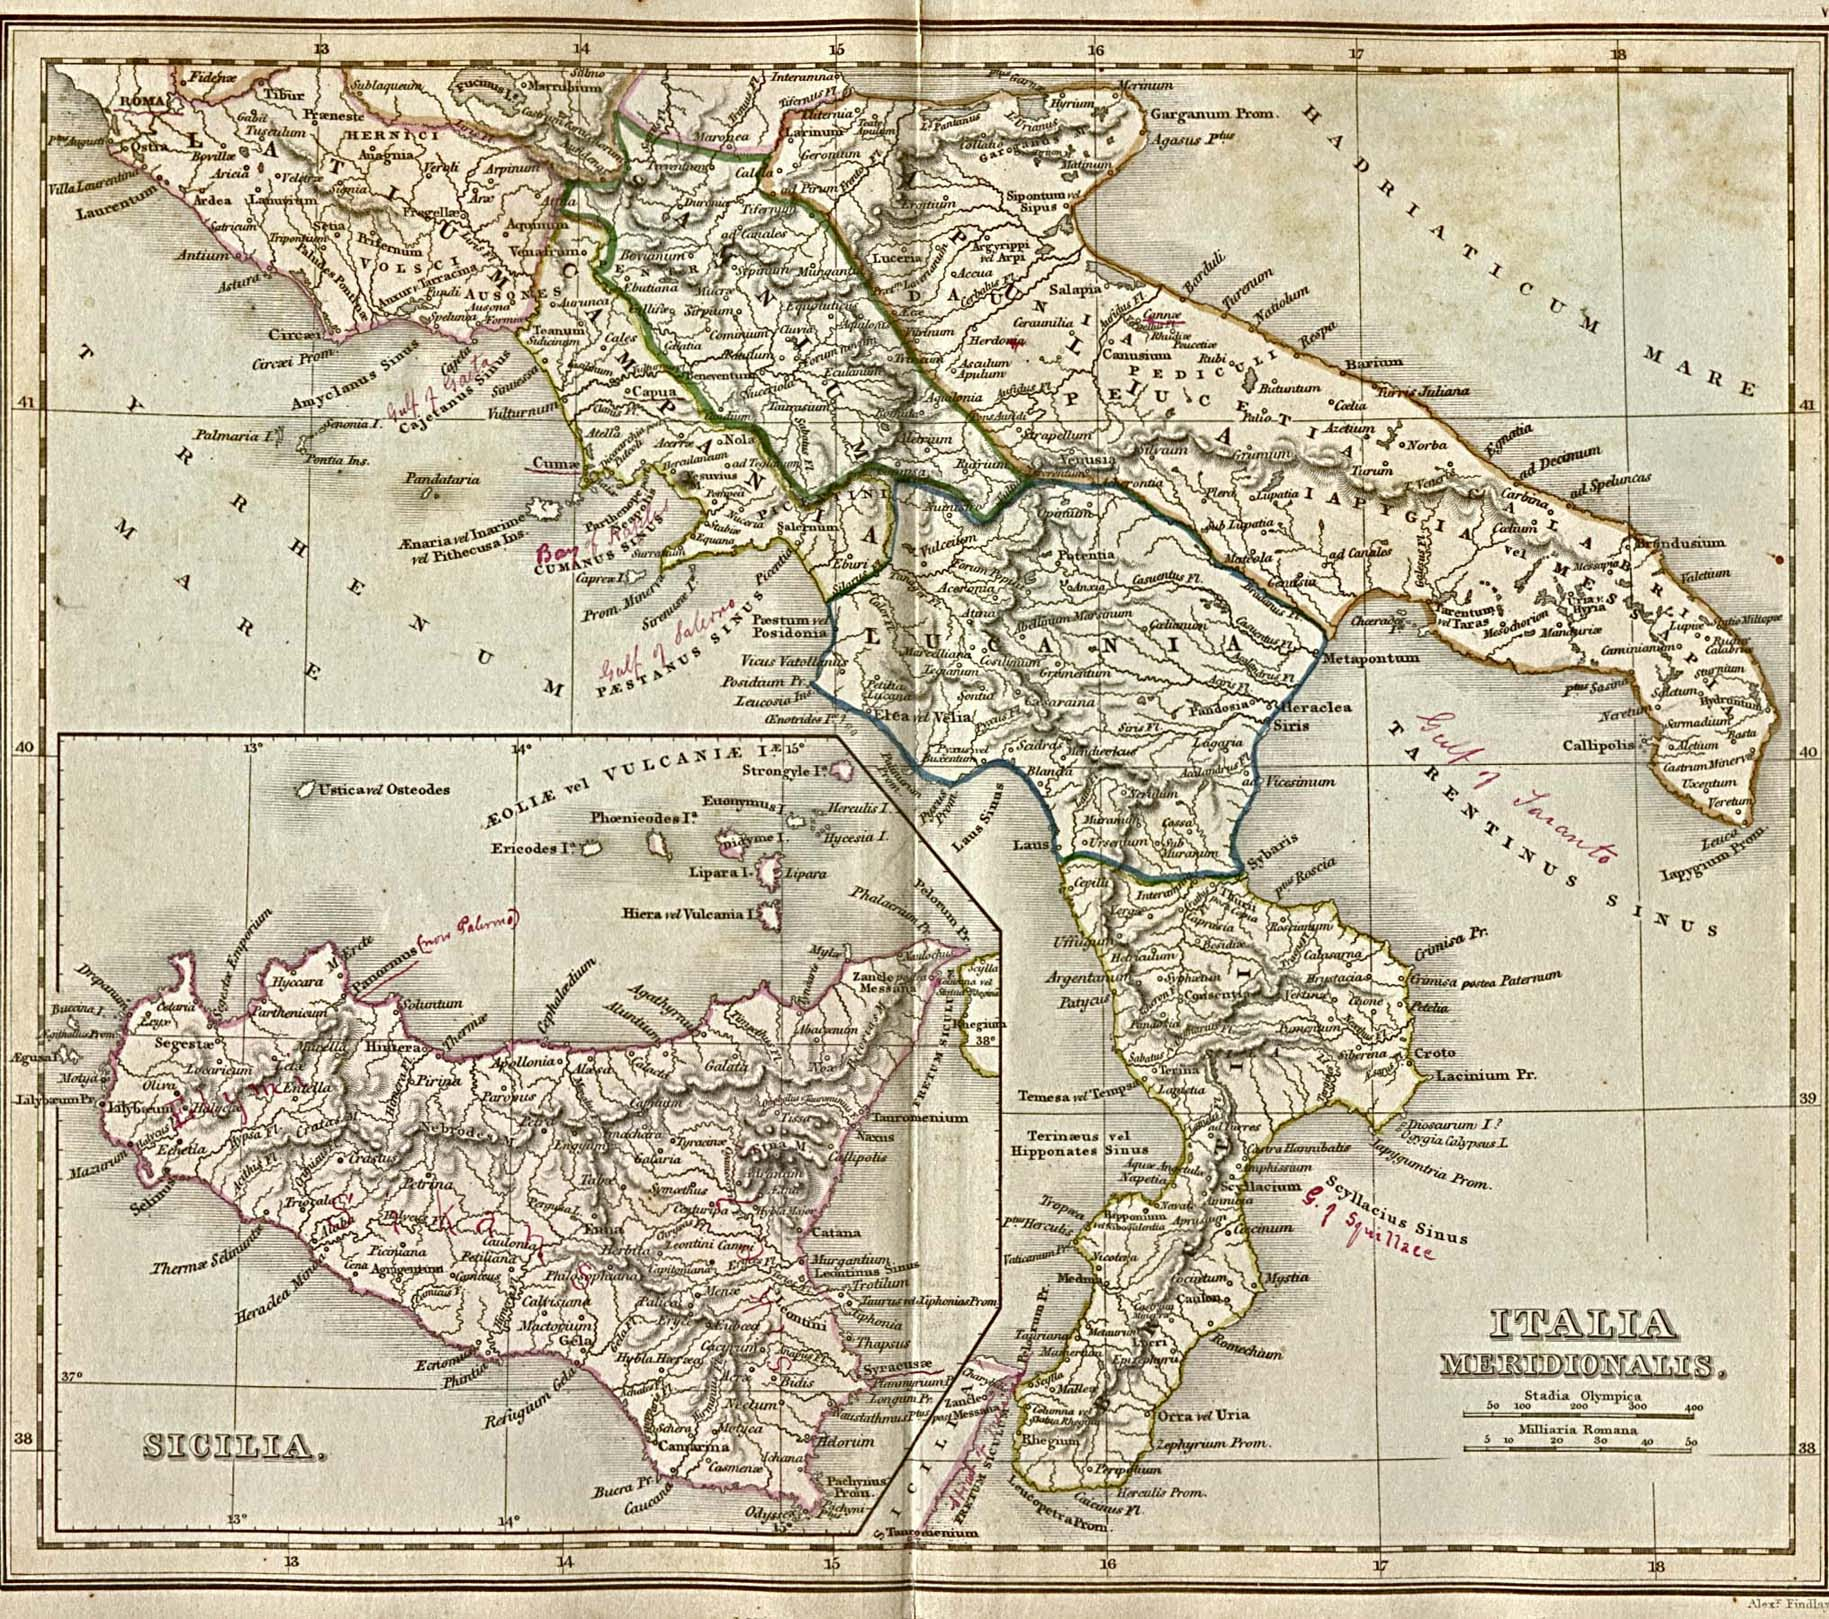 Thehistoryof podcast a history of hannibal episode 3 for Atlas mediterranean cuisine